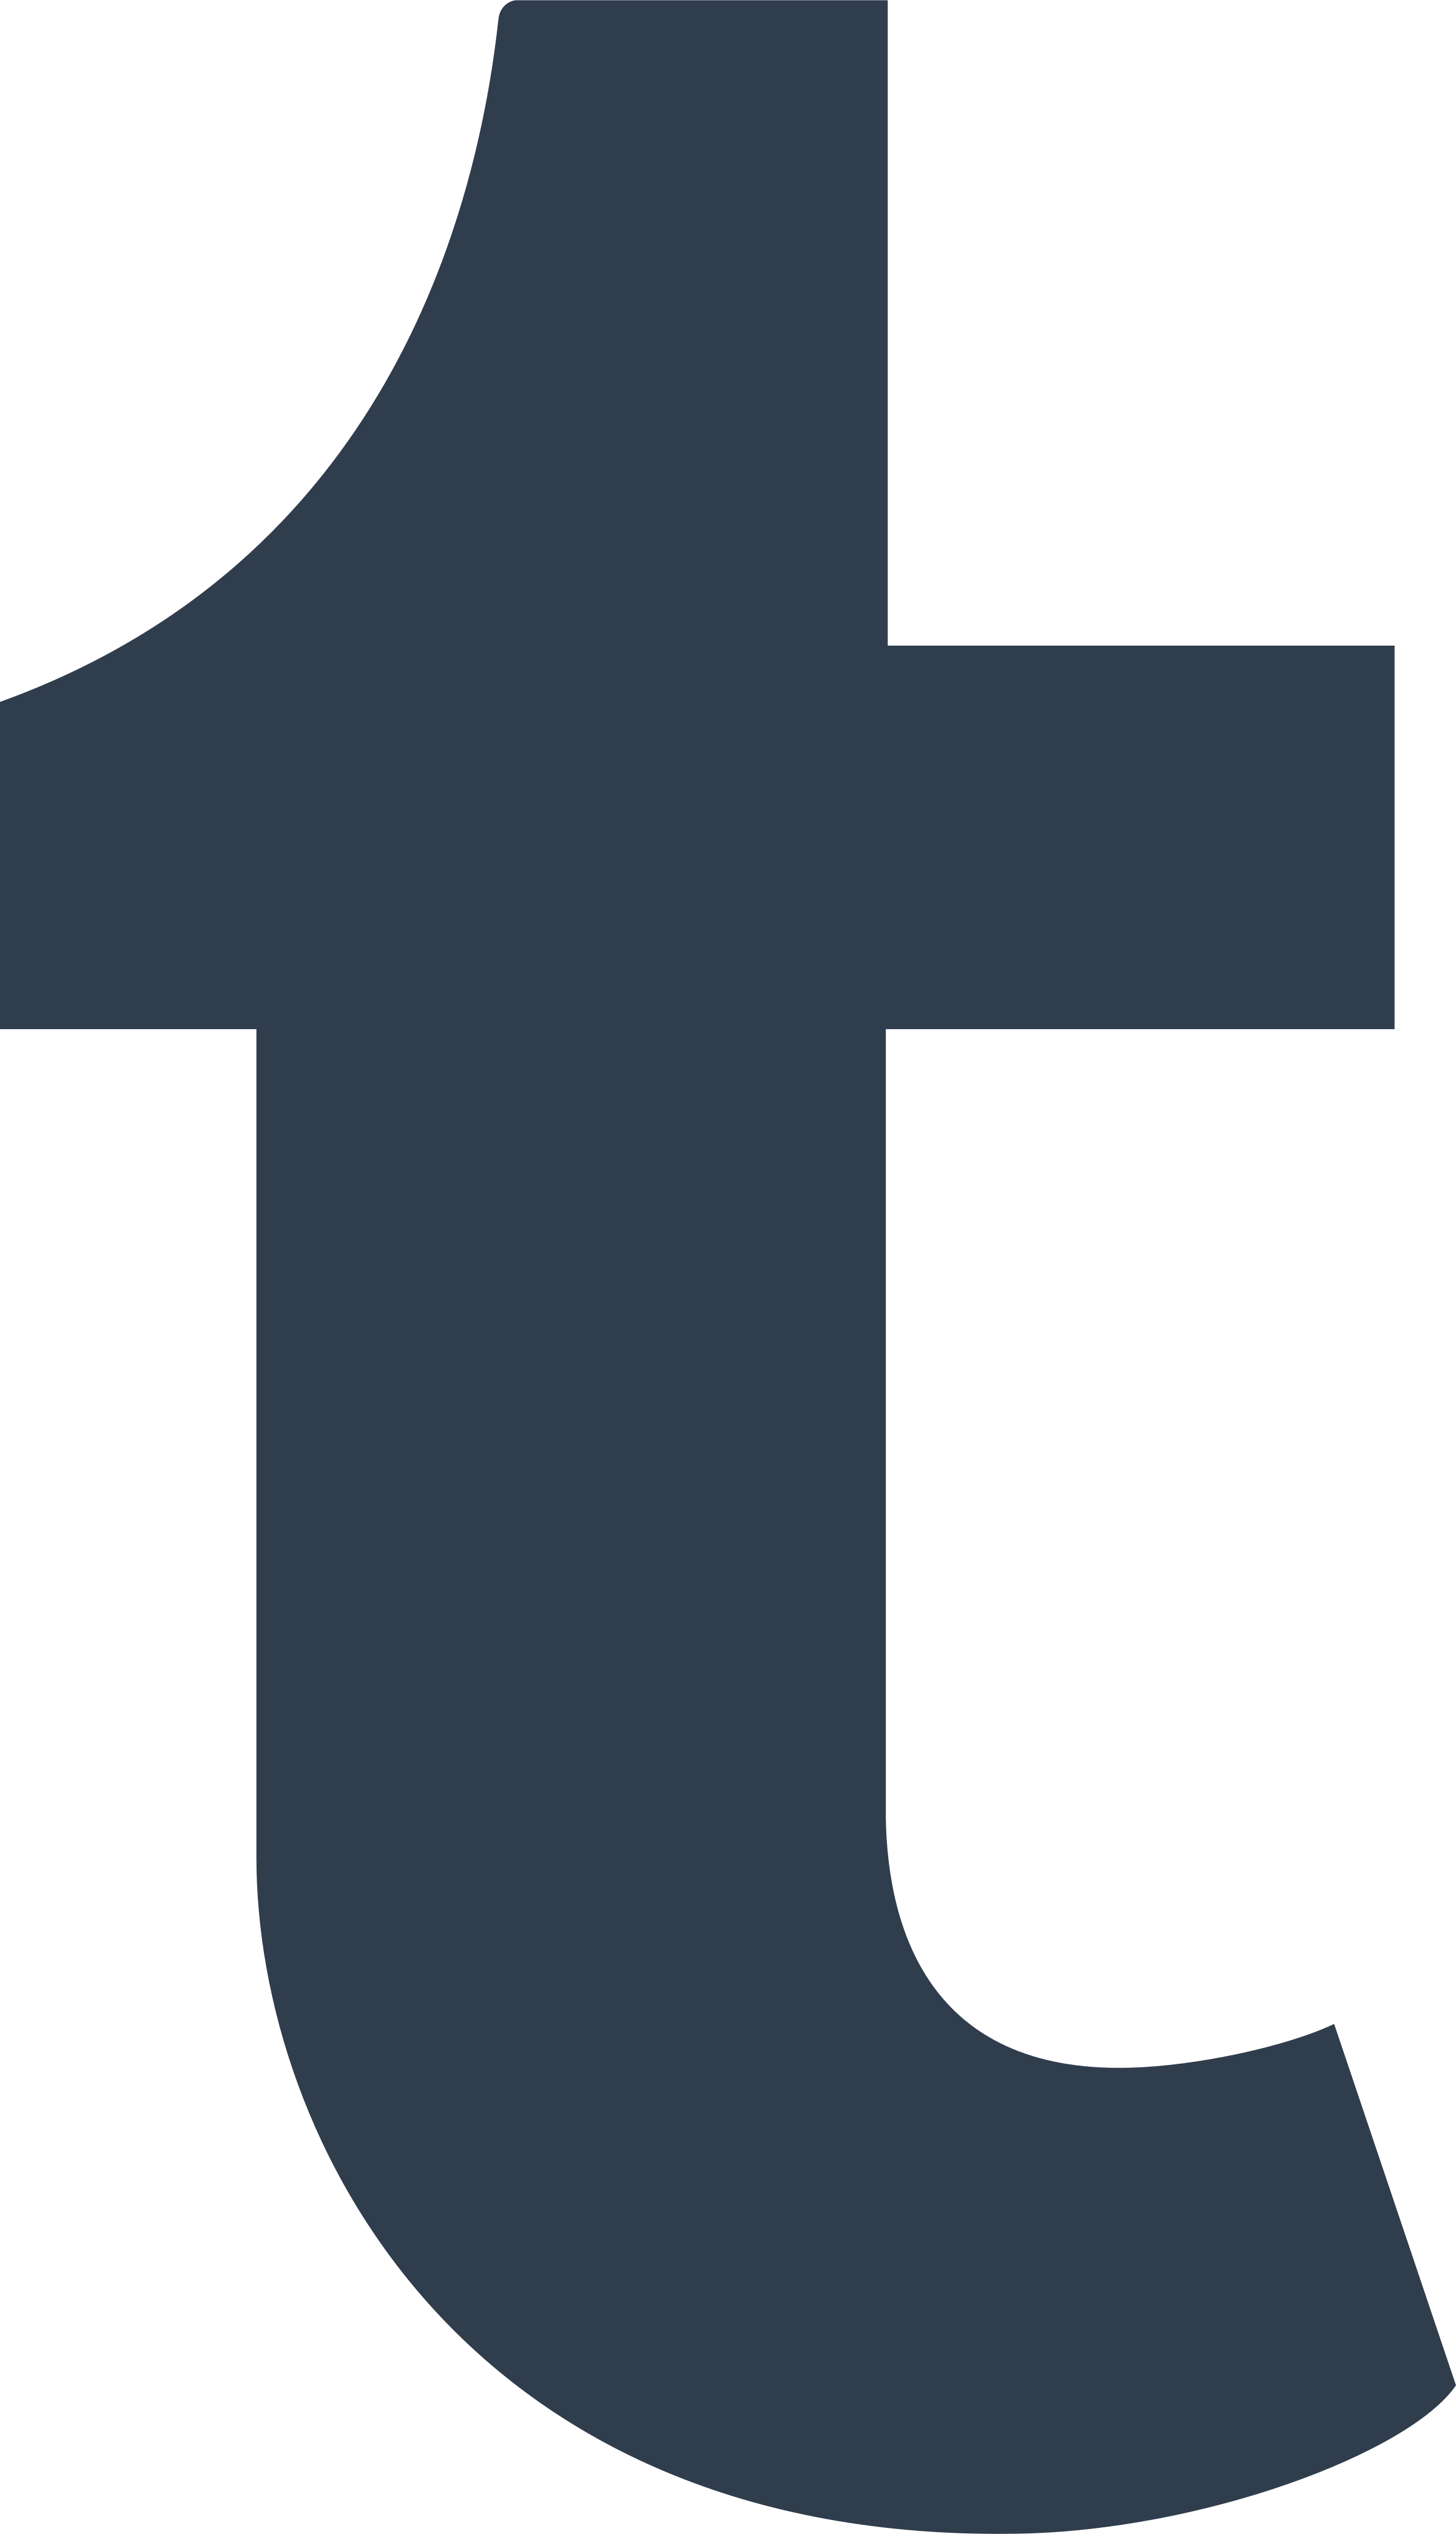 Tumblr icon png. Logo transparent svg vector